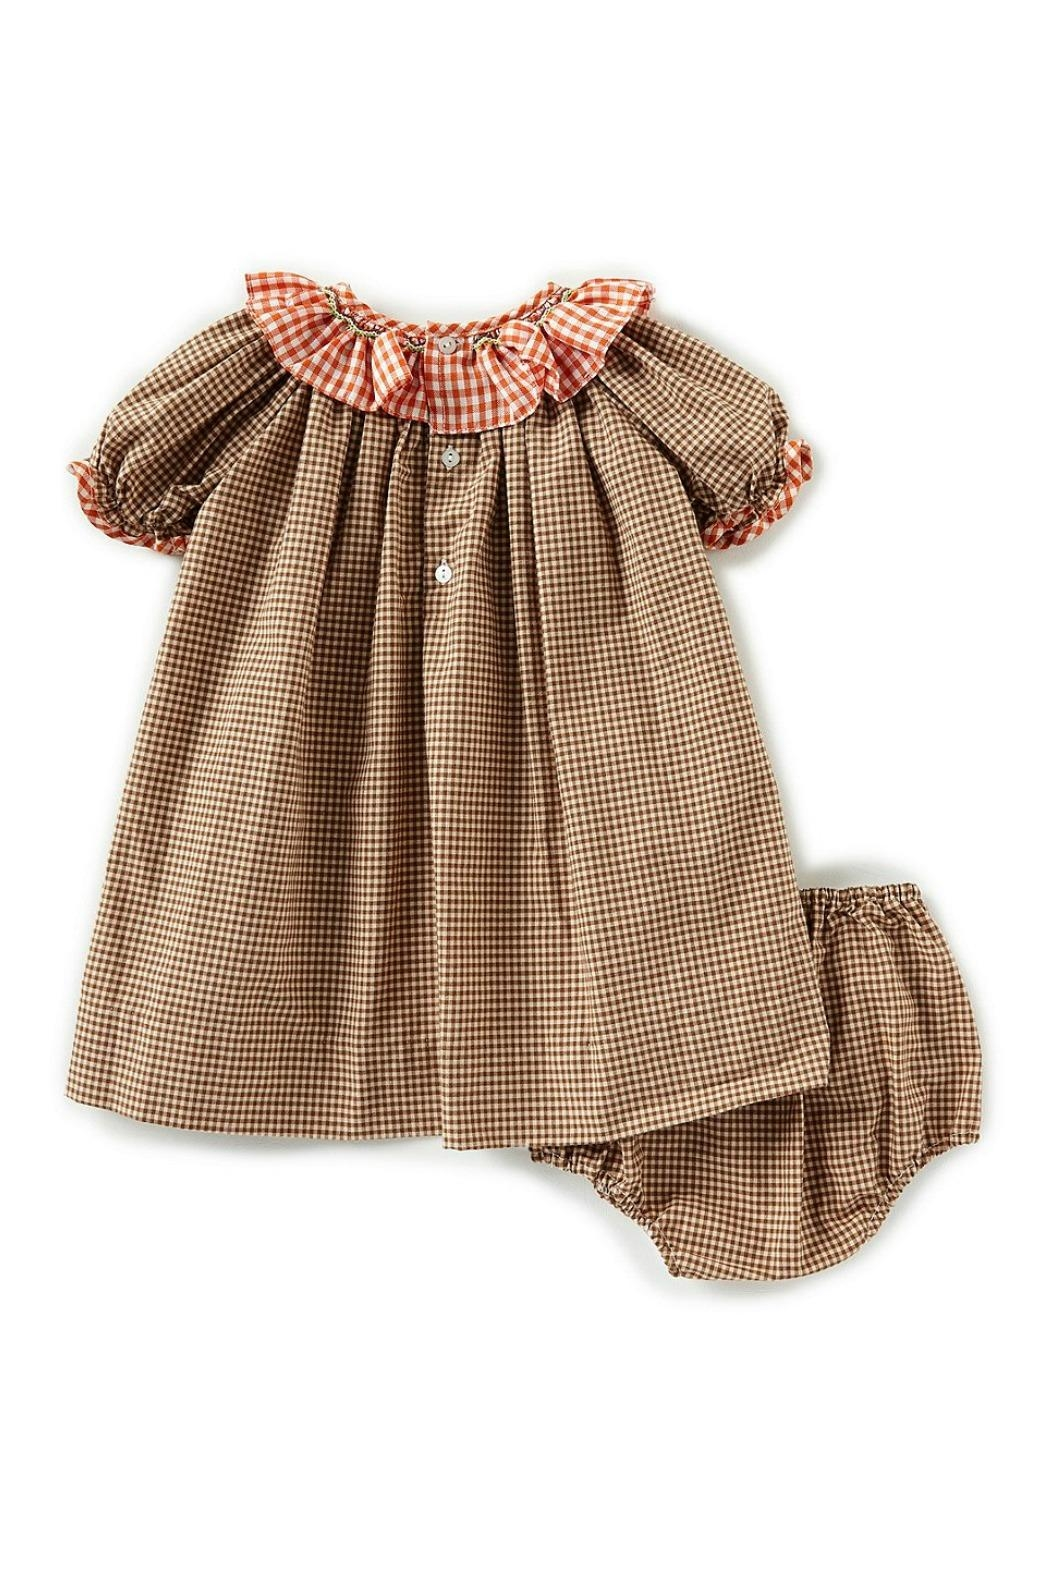 Petit Ami Pumpkin-Embroidered-Gingham-Dress-With-Bloomers - Front Full Image